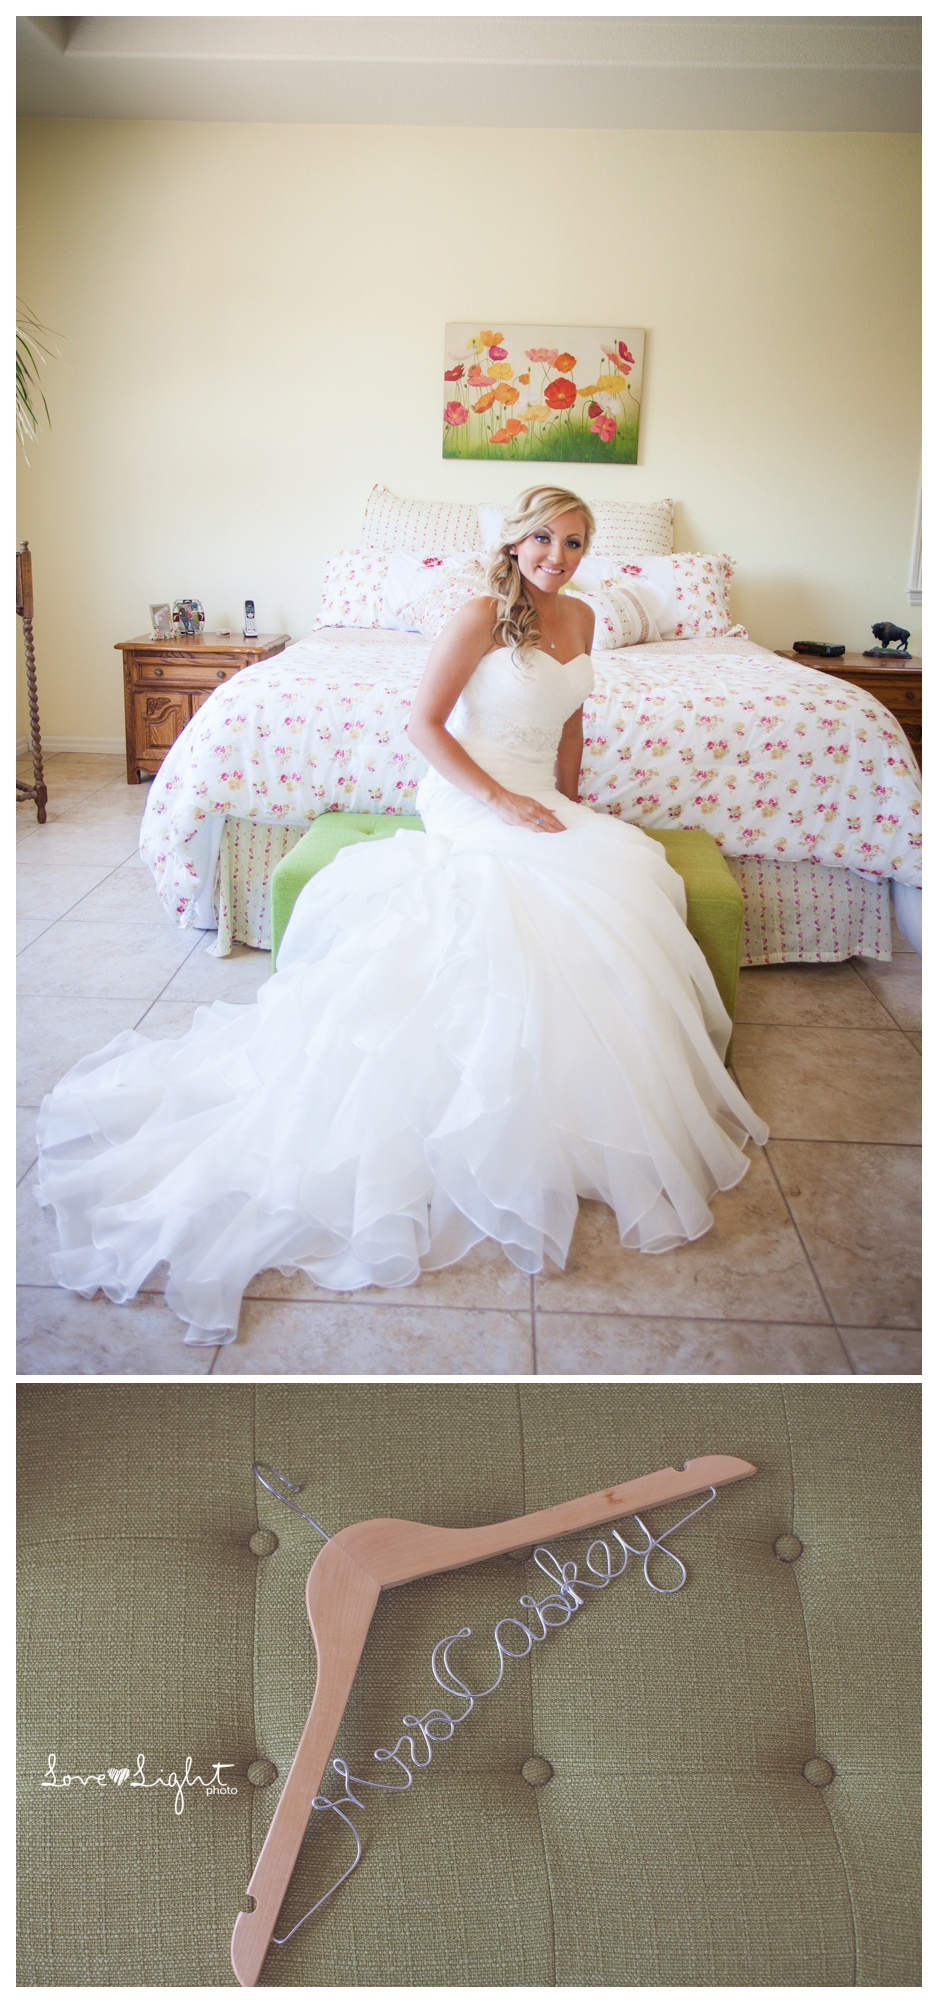 Wedgewood golfcourse wedding